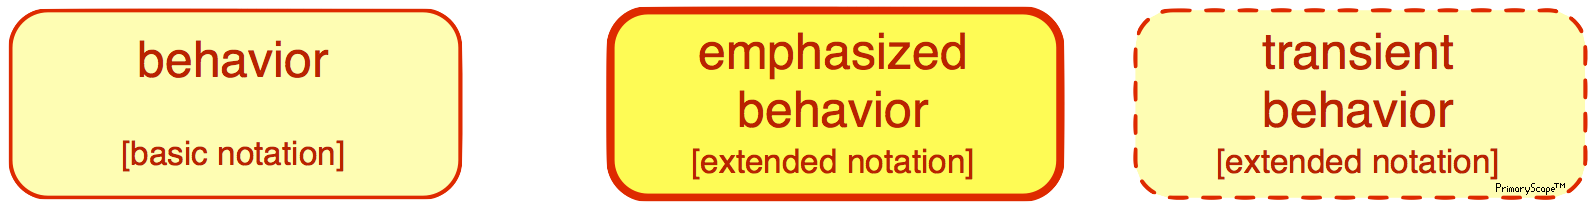 prsc-behavior-basic-extended™